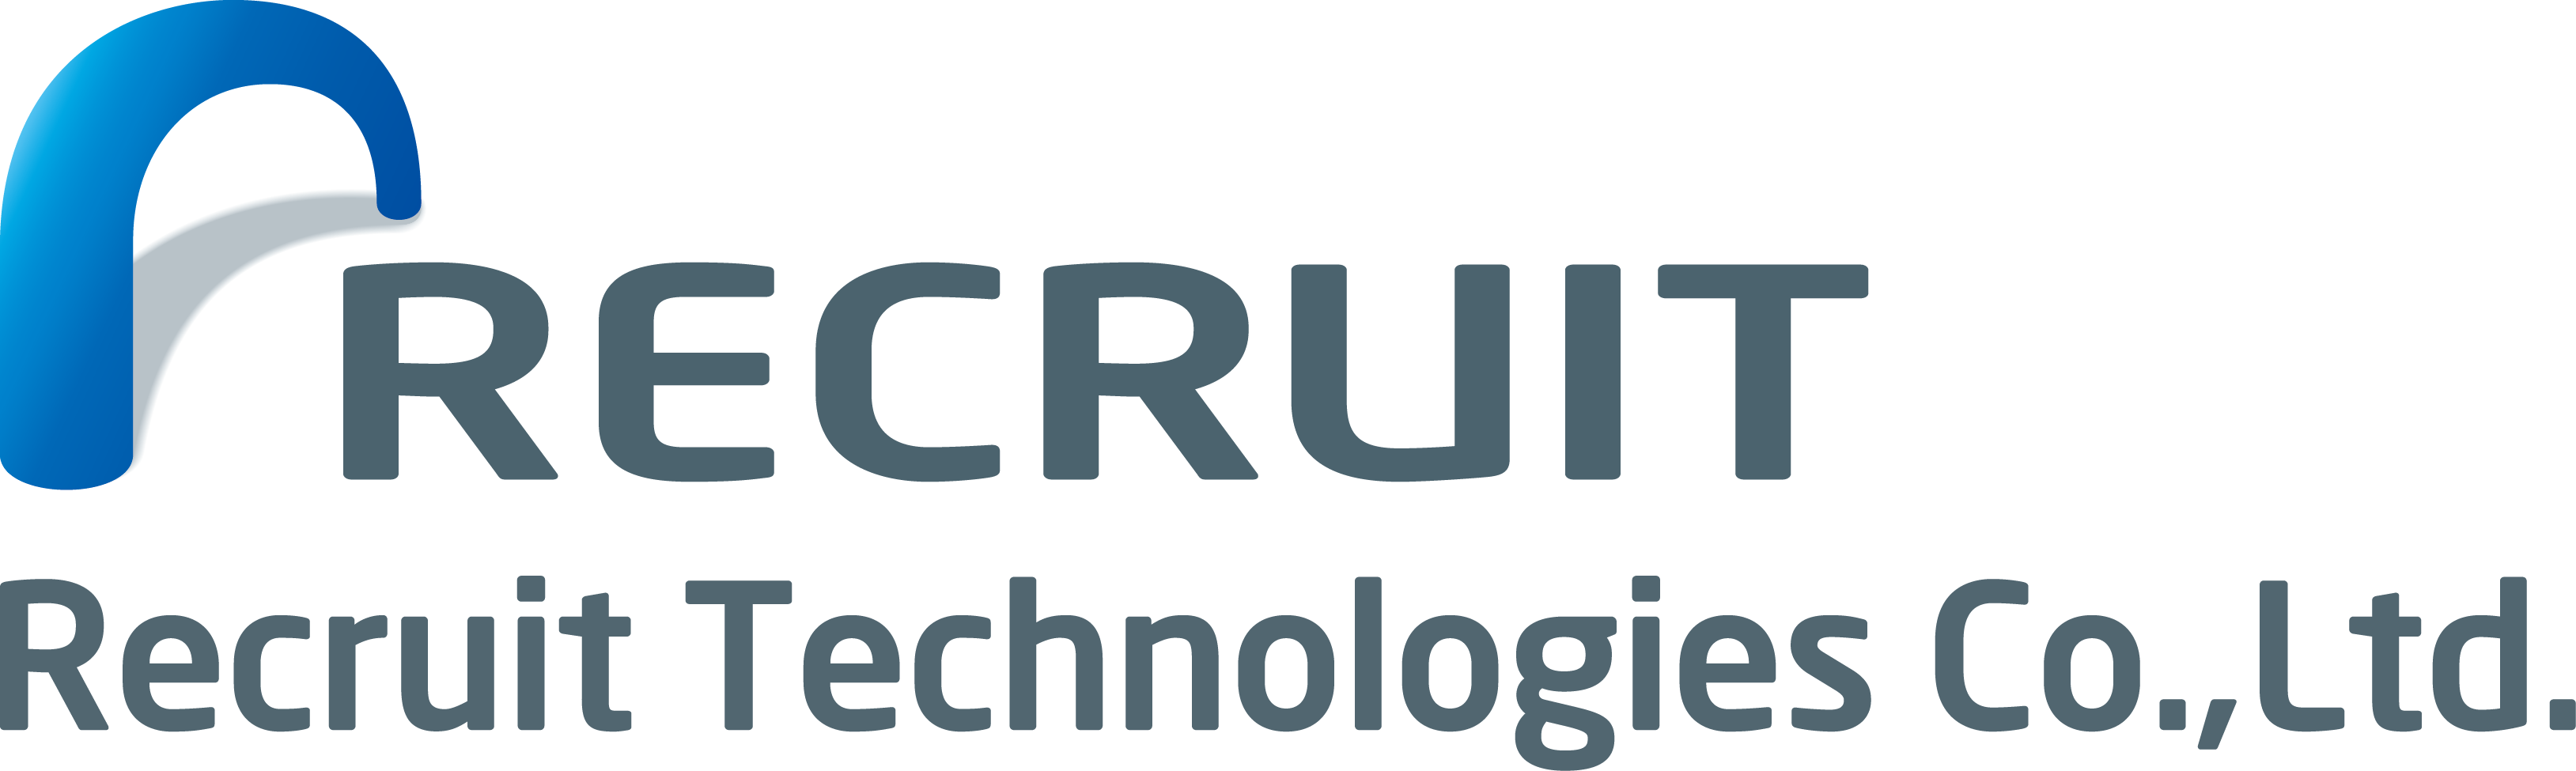 Recruit Technologies